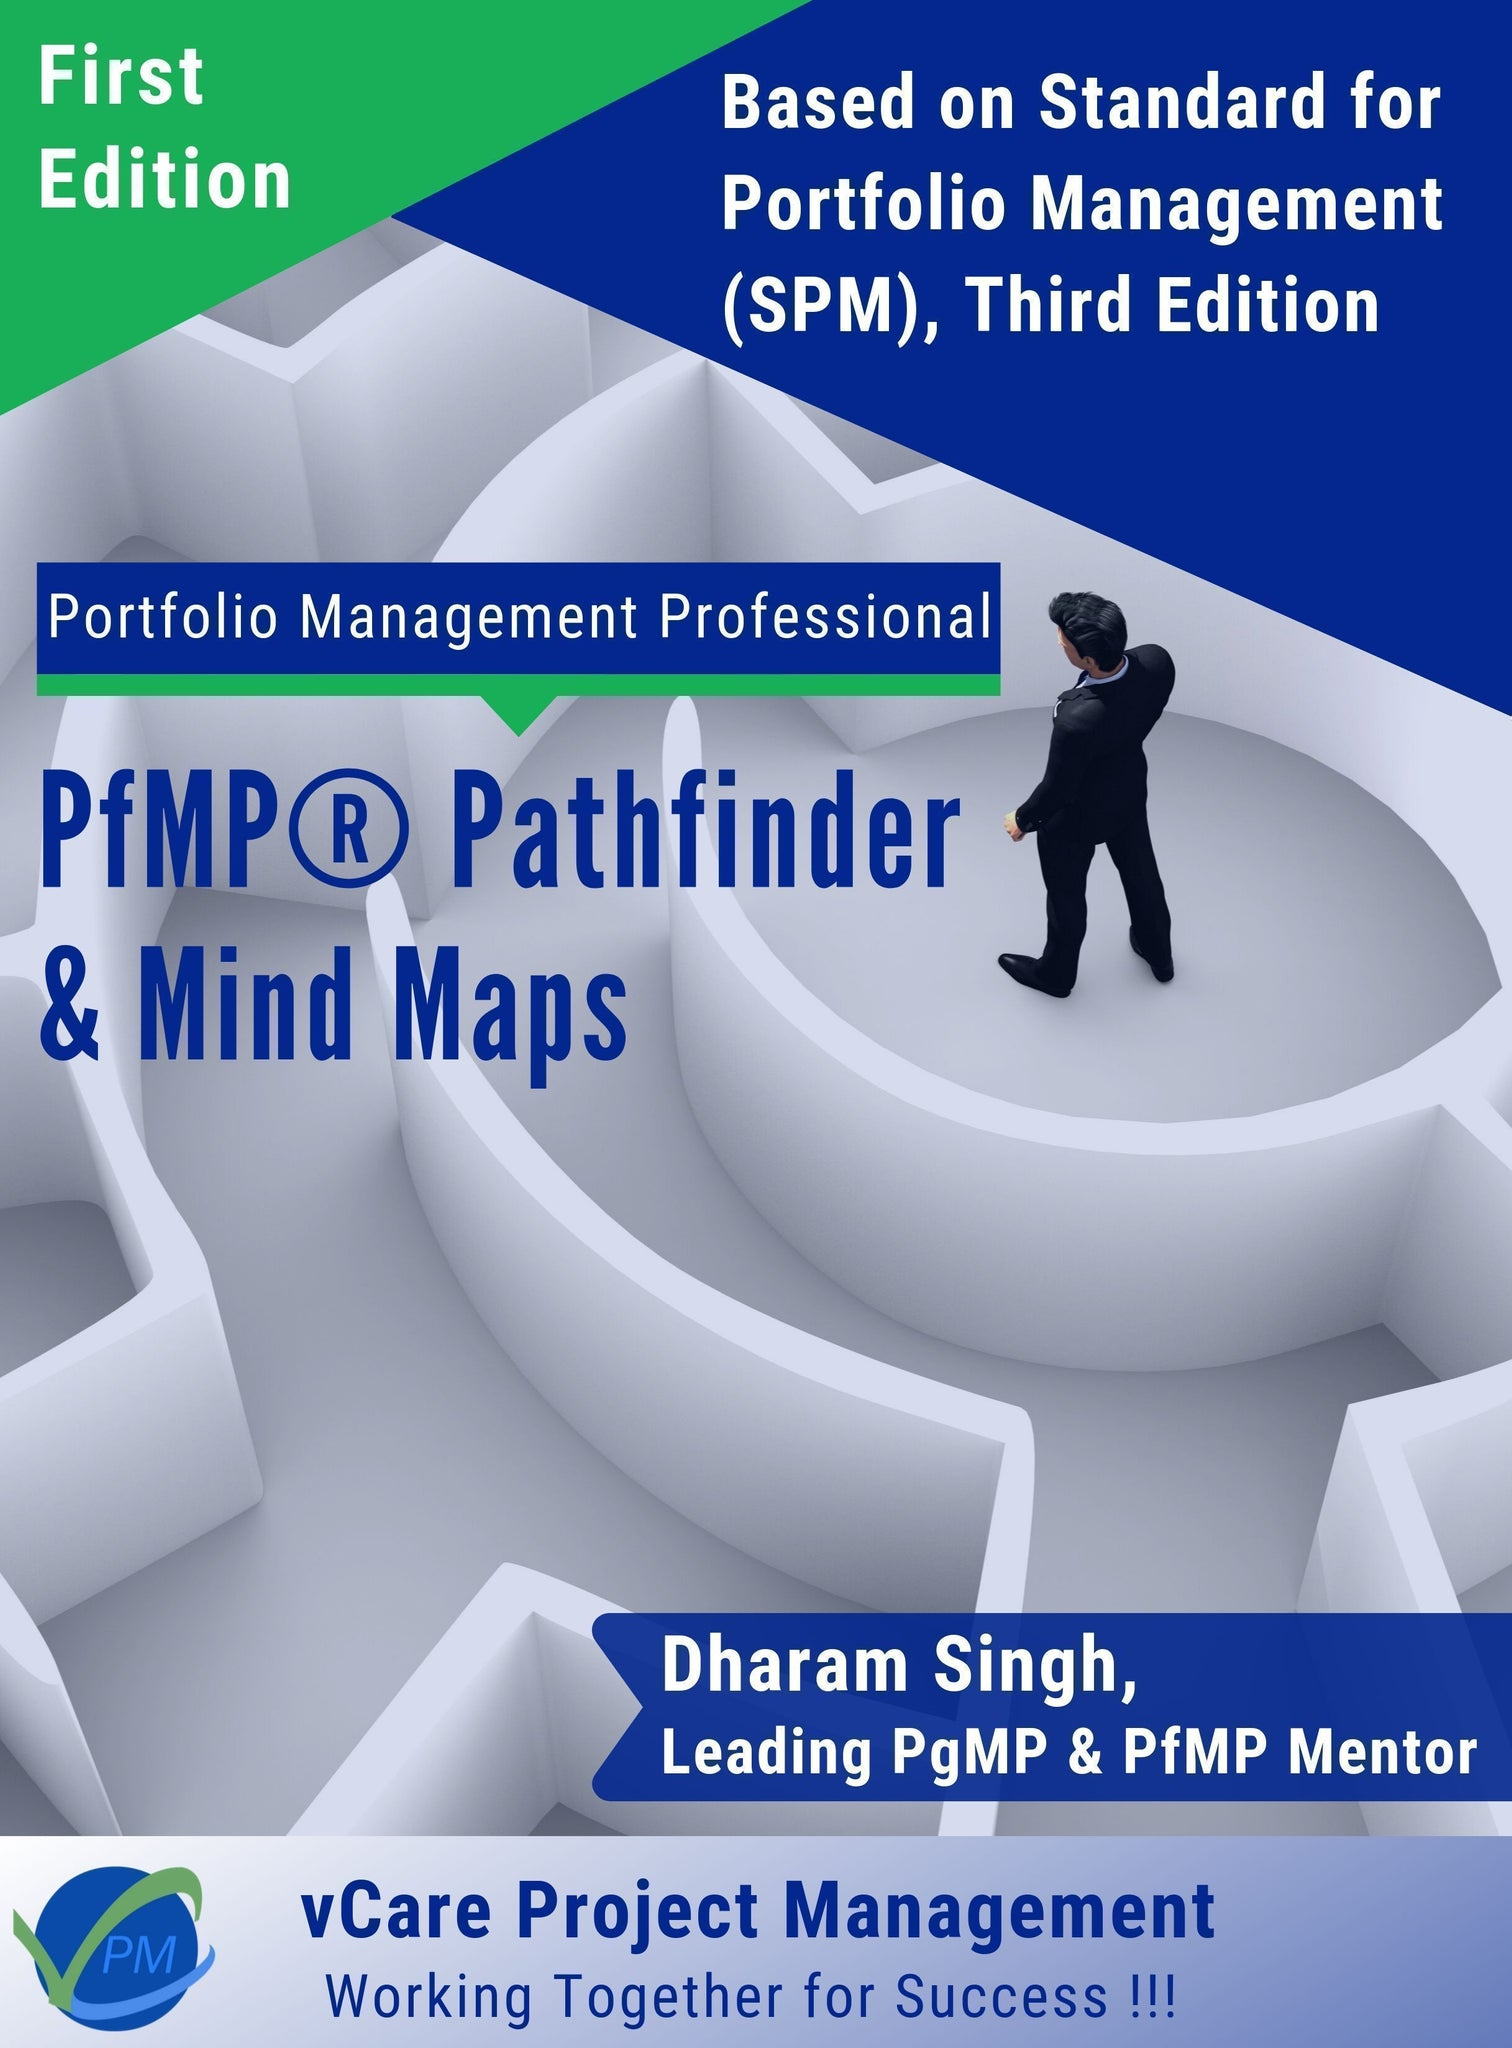 PfMP® Pathfinder | based on PfMP® Examination Content Outline ECO | based on SPM3 | Case study